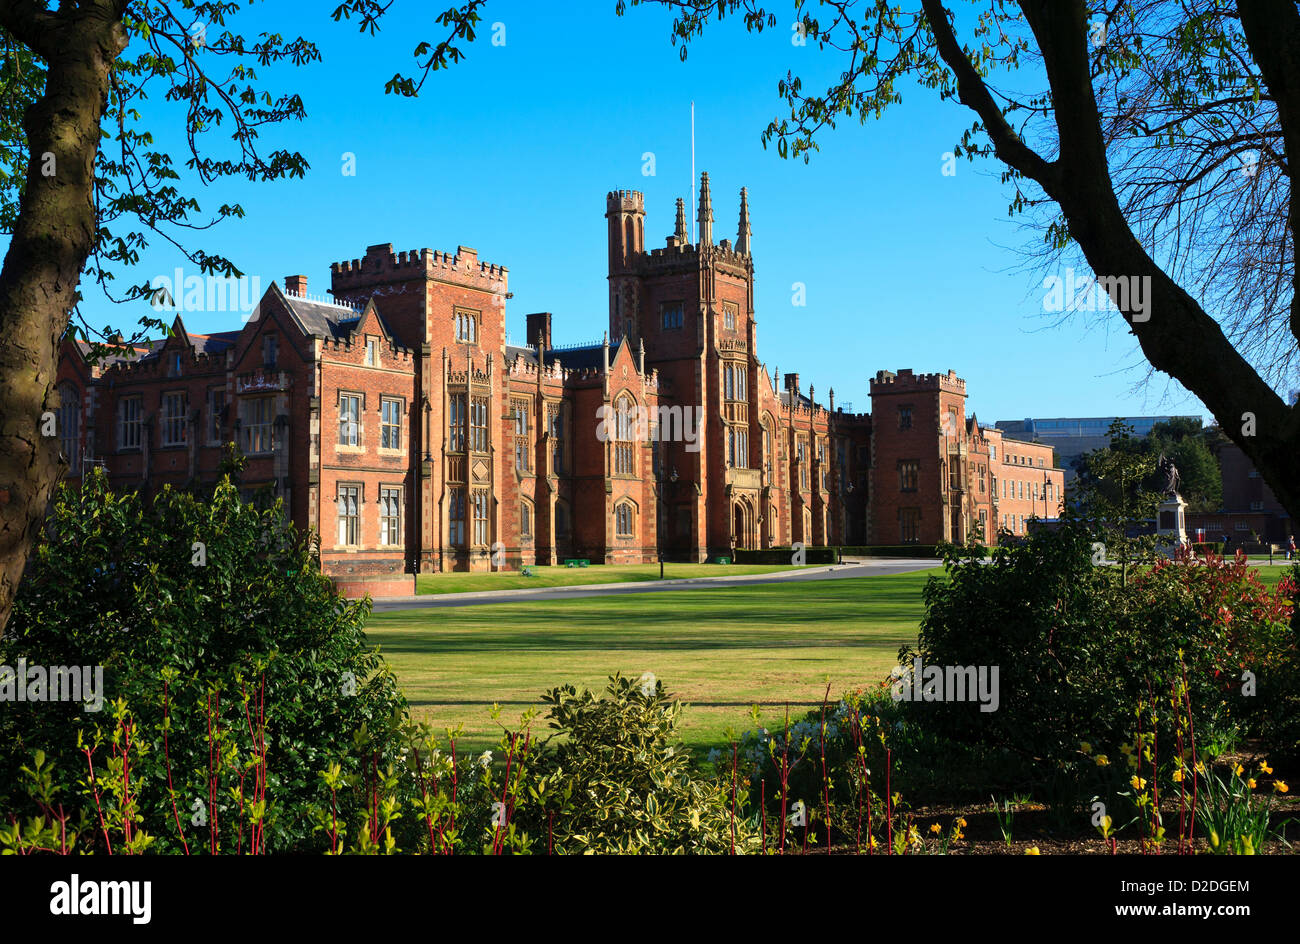 The Lanyon Building, part of Queen's University in Belfast, framed by surrounding trees and gardens - Stock Image